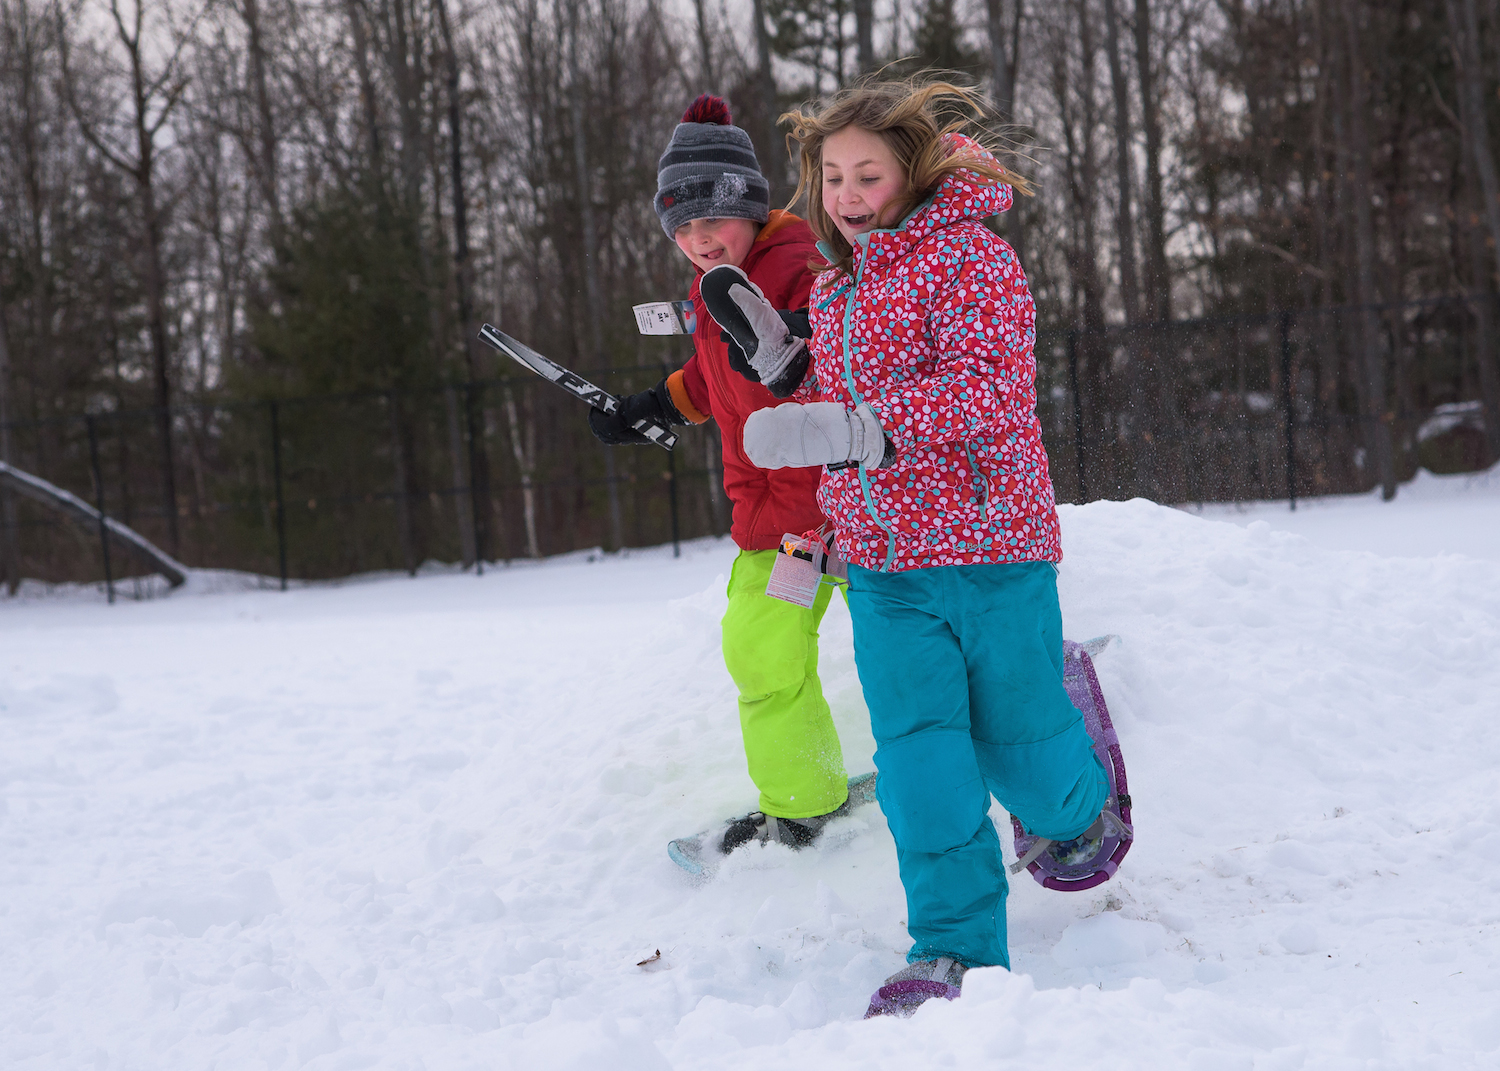 Madeline Wolfgram, 10, and Benjamin Wolfgram, 7, of Scarborough compete in the Snow Shoe Obstacle Course.